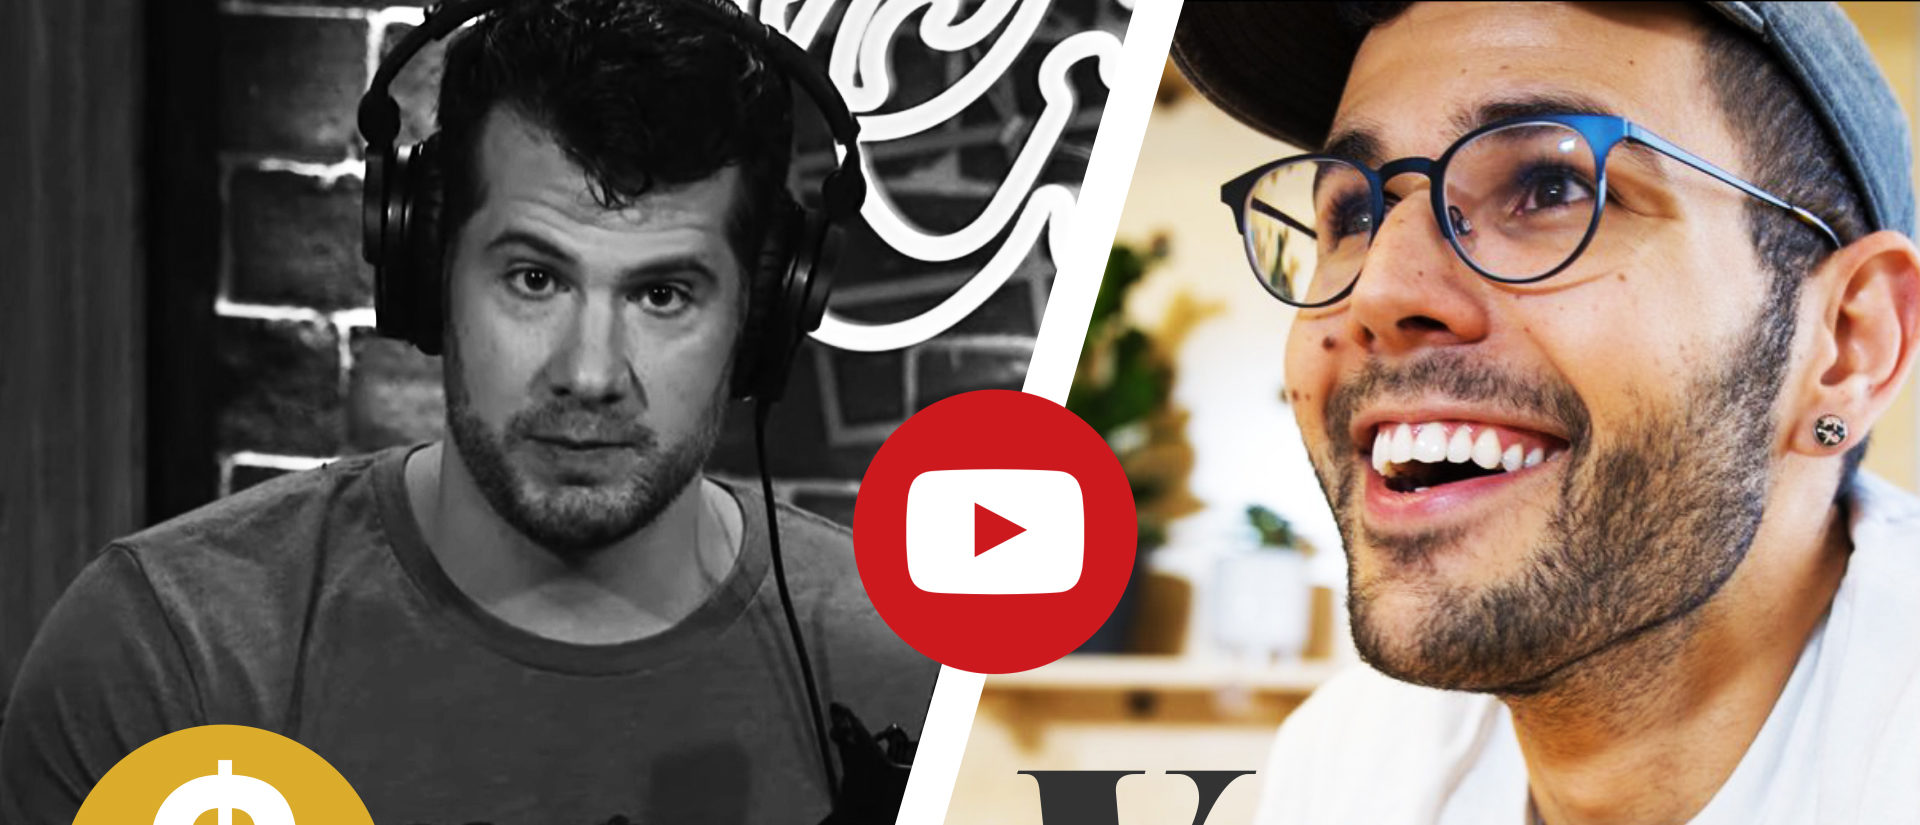 YouTube demonetized Steven Crowder after Vox personality Carlos Maza pestered them. (Daily Caller)